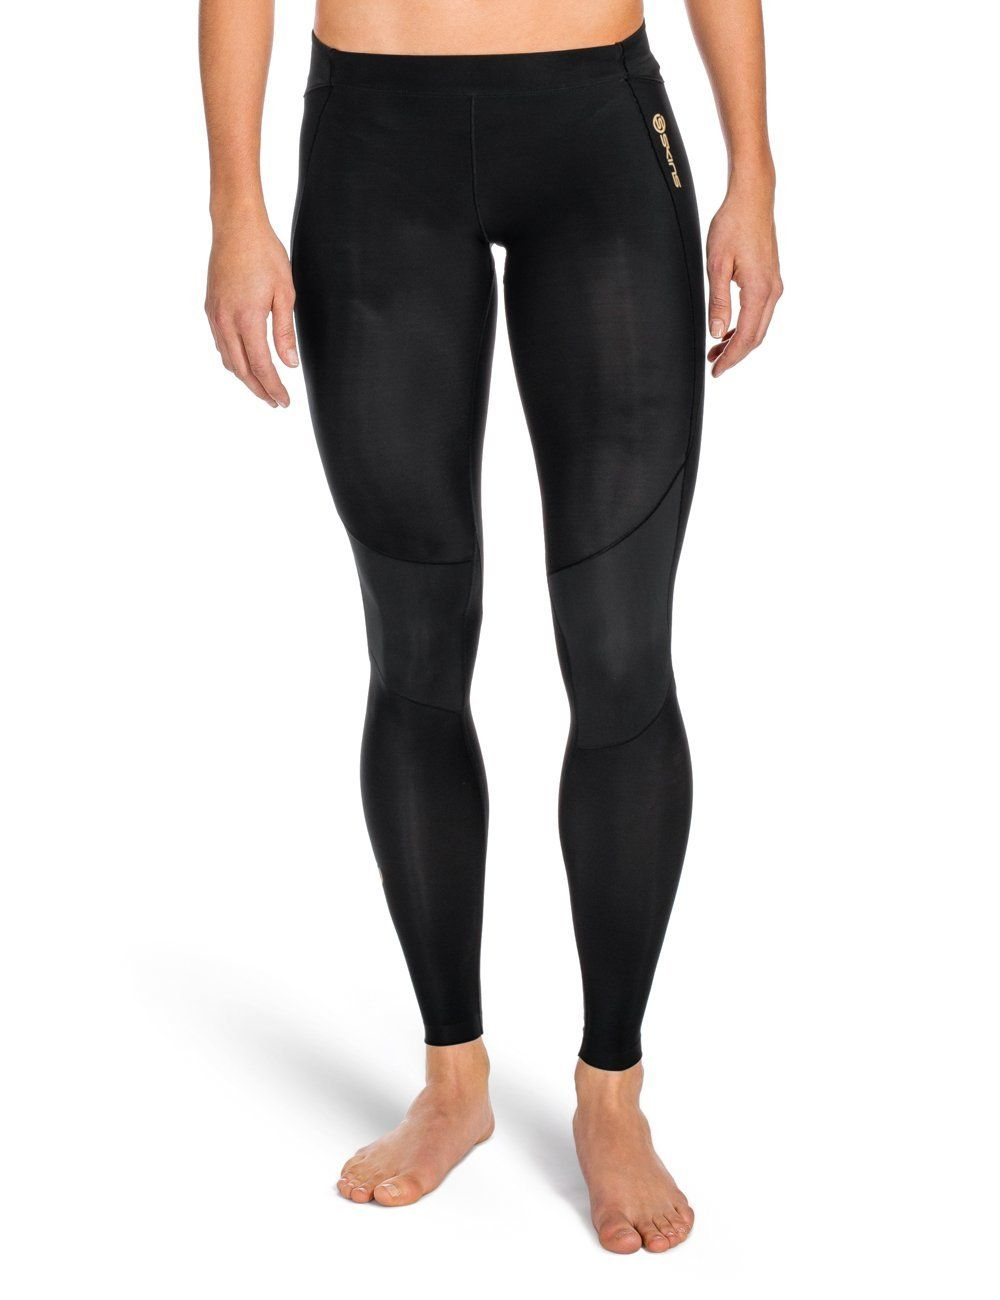 899786160e4fd SKINS Women's A400Compression Long Tights >>> This is an Amazon ...